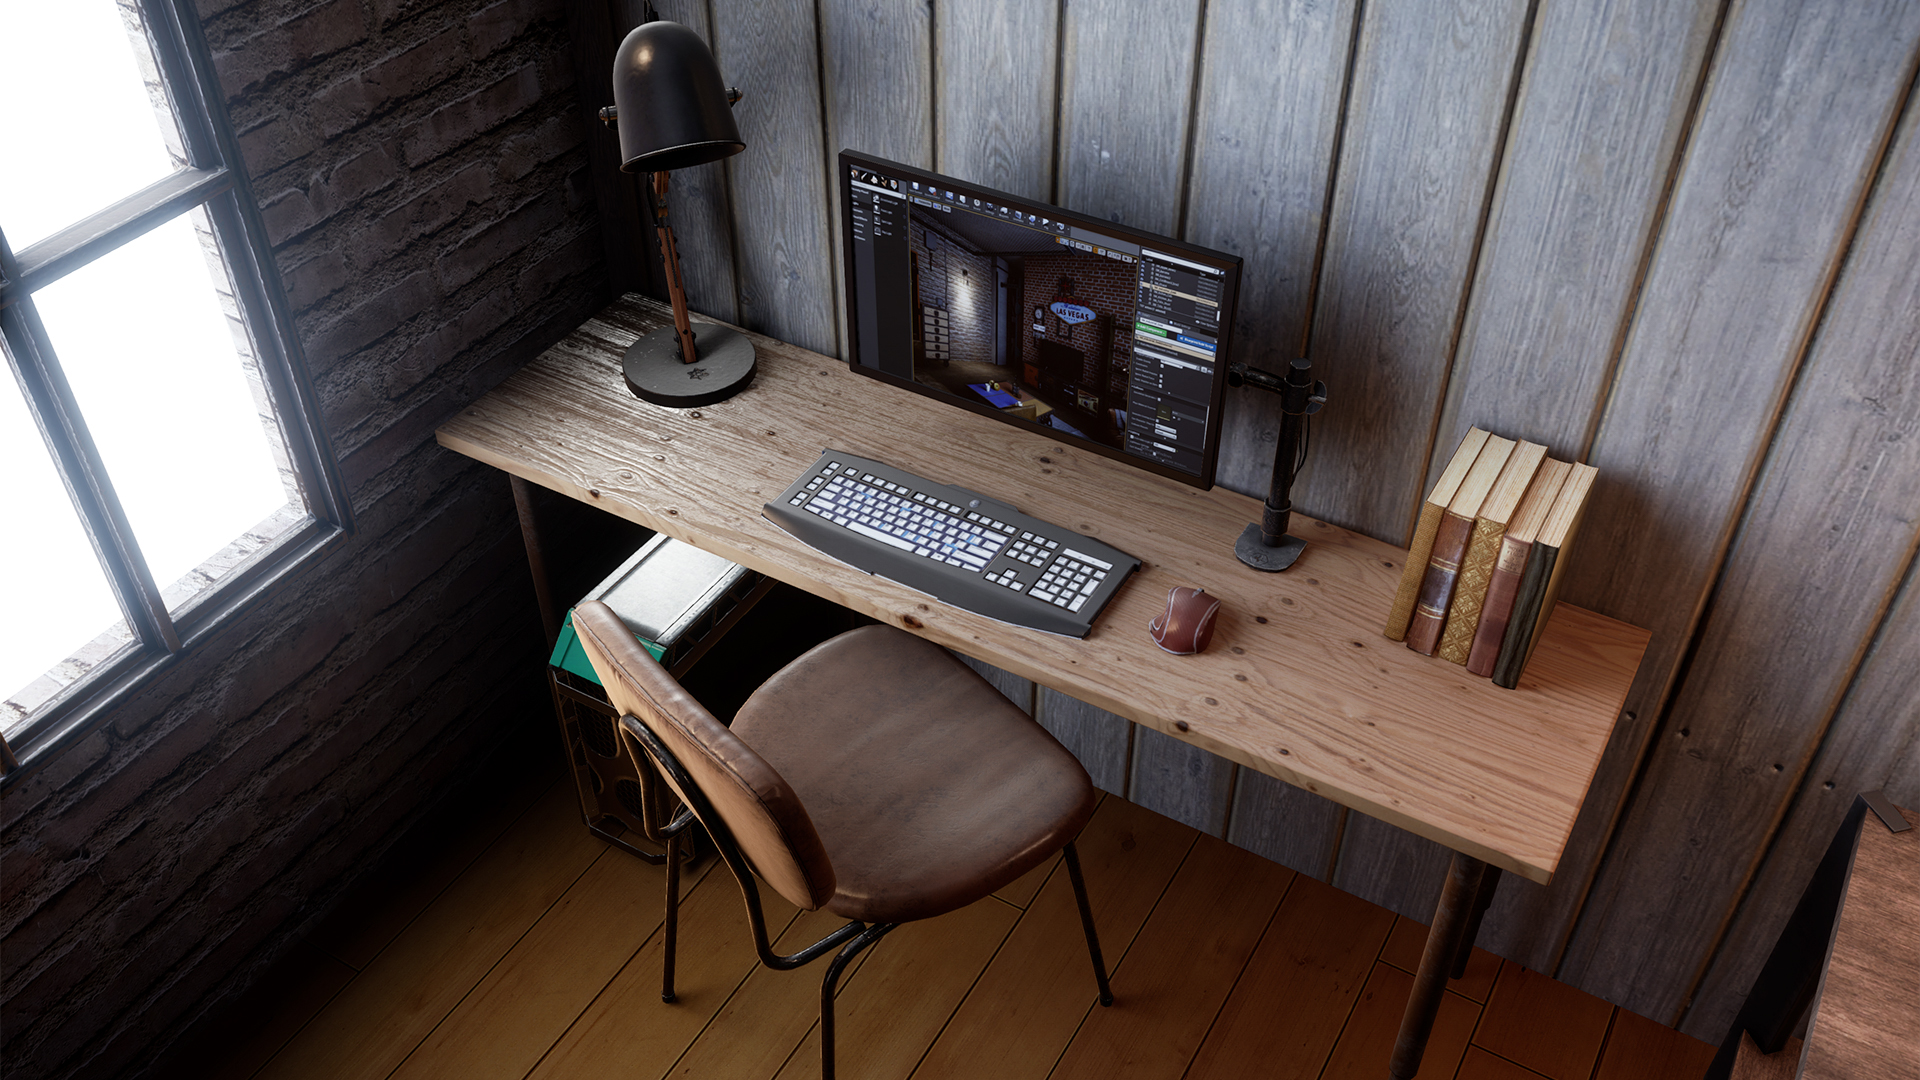 Industrial loft furniture pack by archviz pro in architectural visualization ue4 marketplace